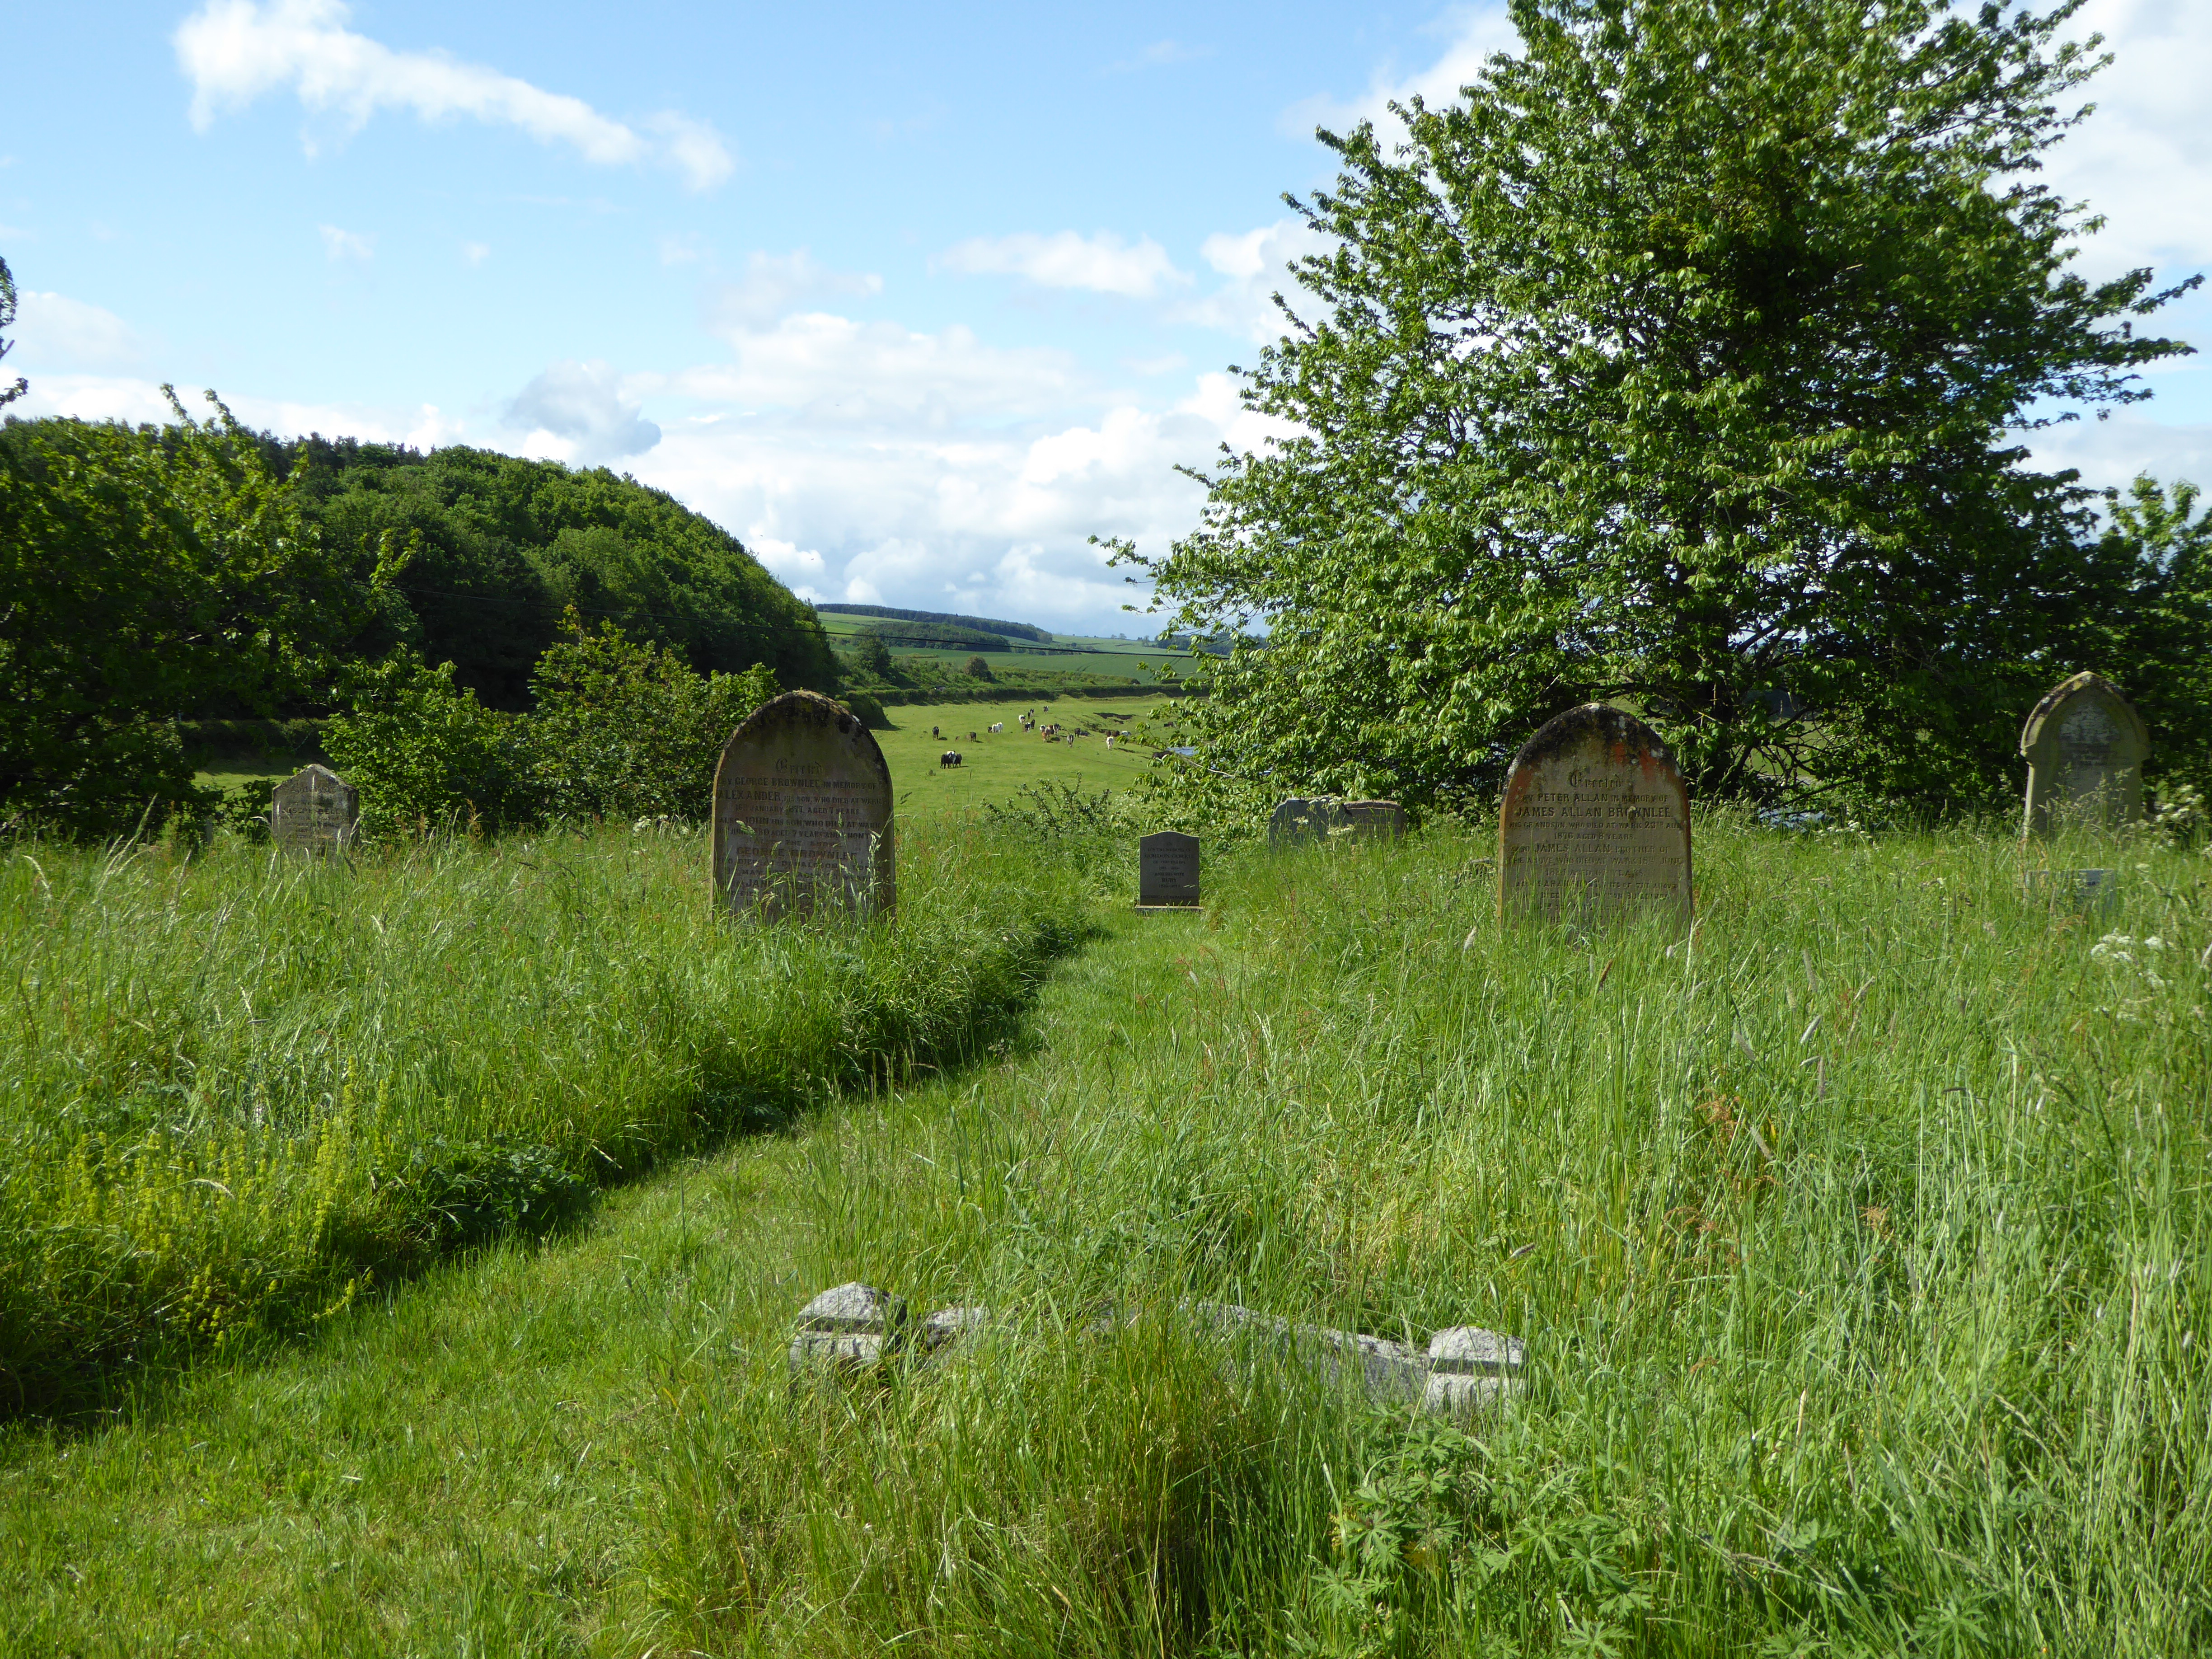 The graveyard at the Church of St Cuthbert looks out over pasture land and the River Tweed